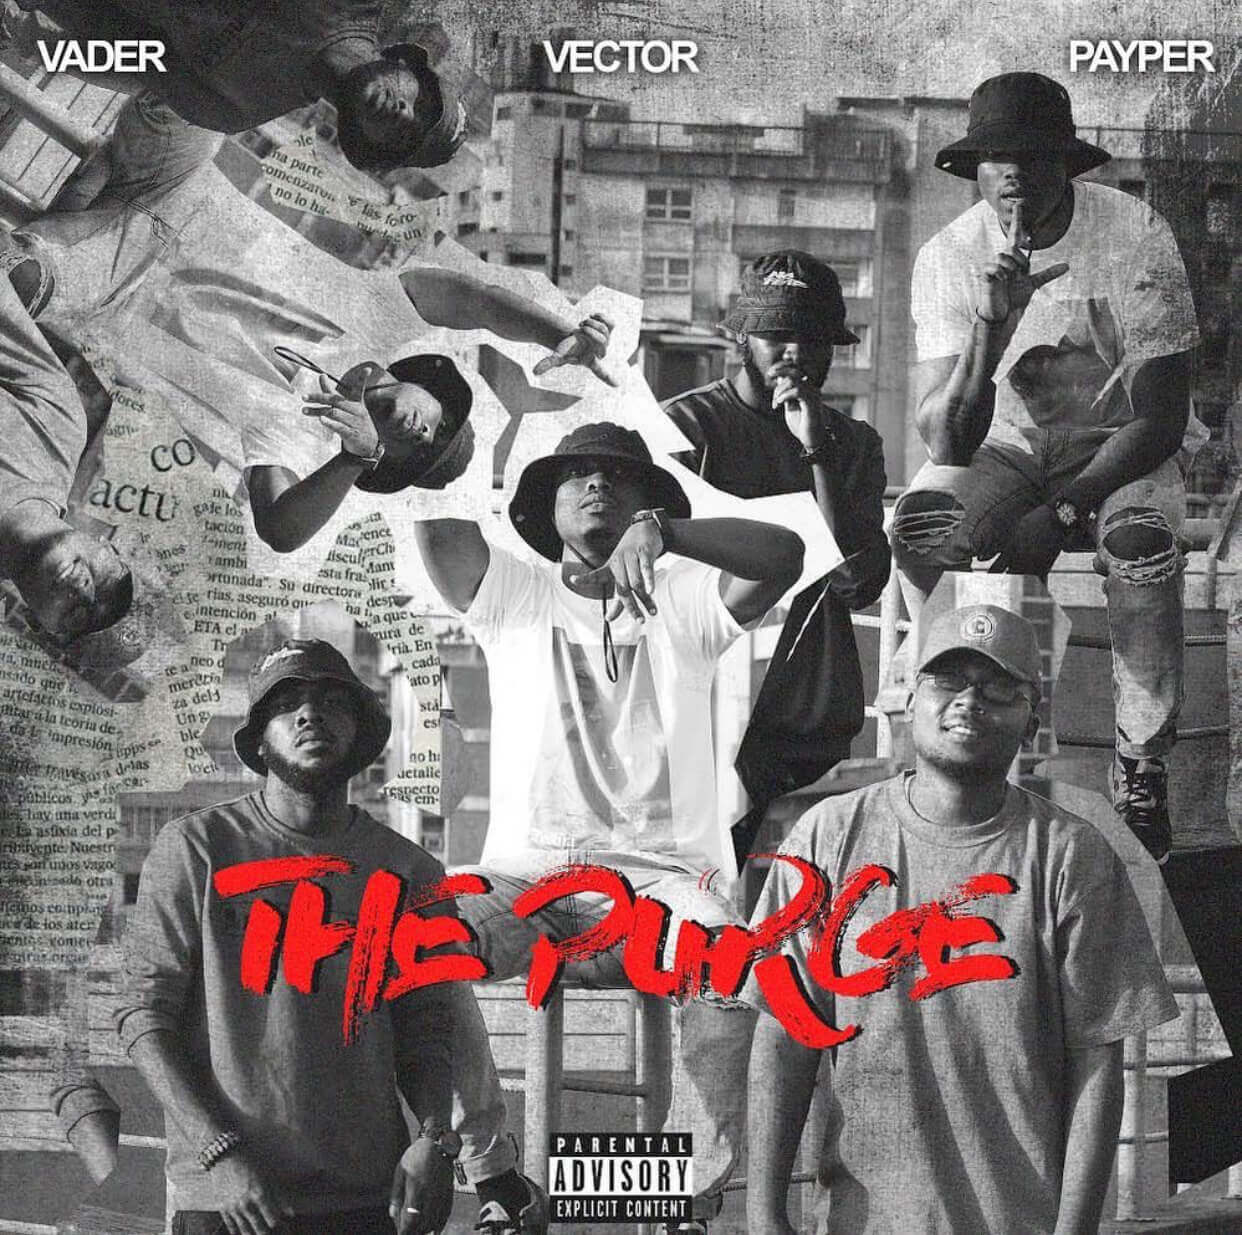 MP3 : The Purge by Vector feat Payper & Vader ( M.I. Diss)